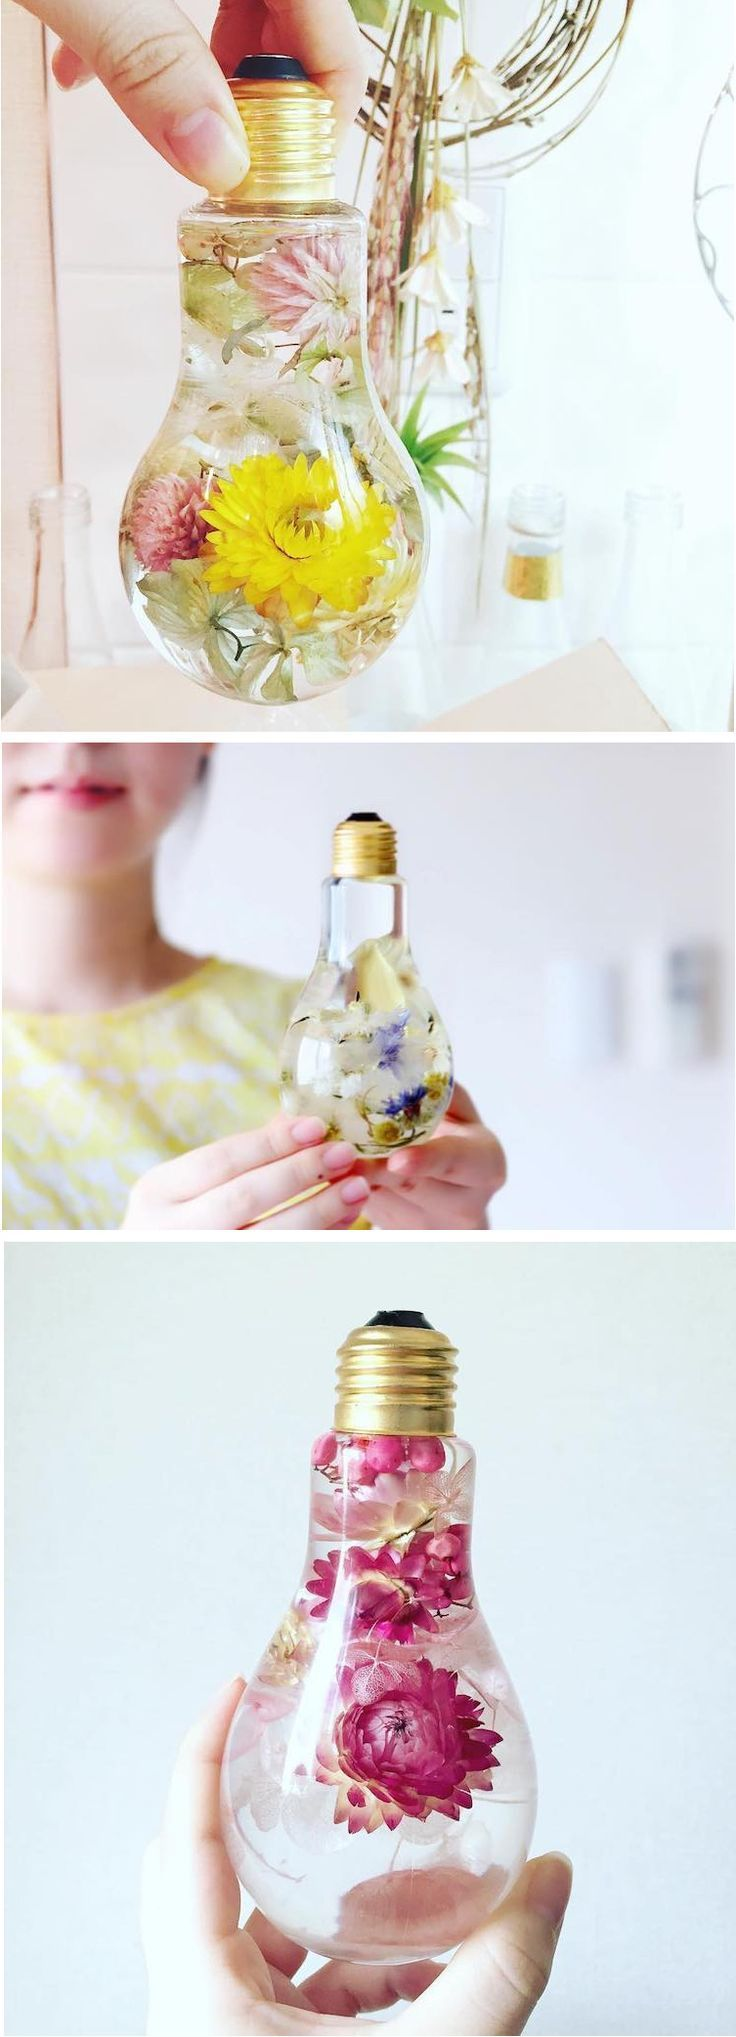 1000 images about lightbulb things on pinterest lightbulbs bulbs - Enchanting Flowers Suspended In Light Bulbs Glisten Like Precious Jewels